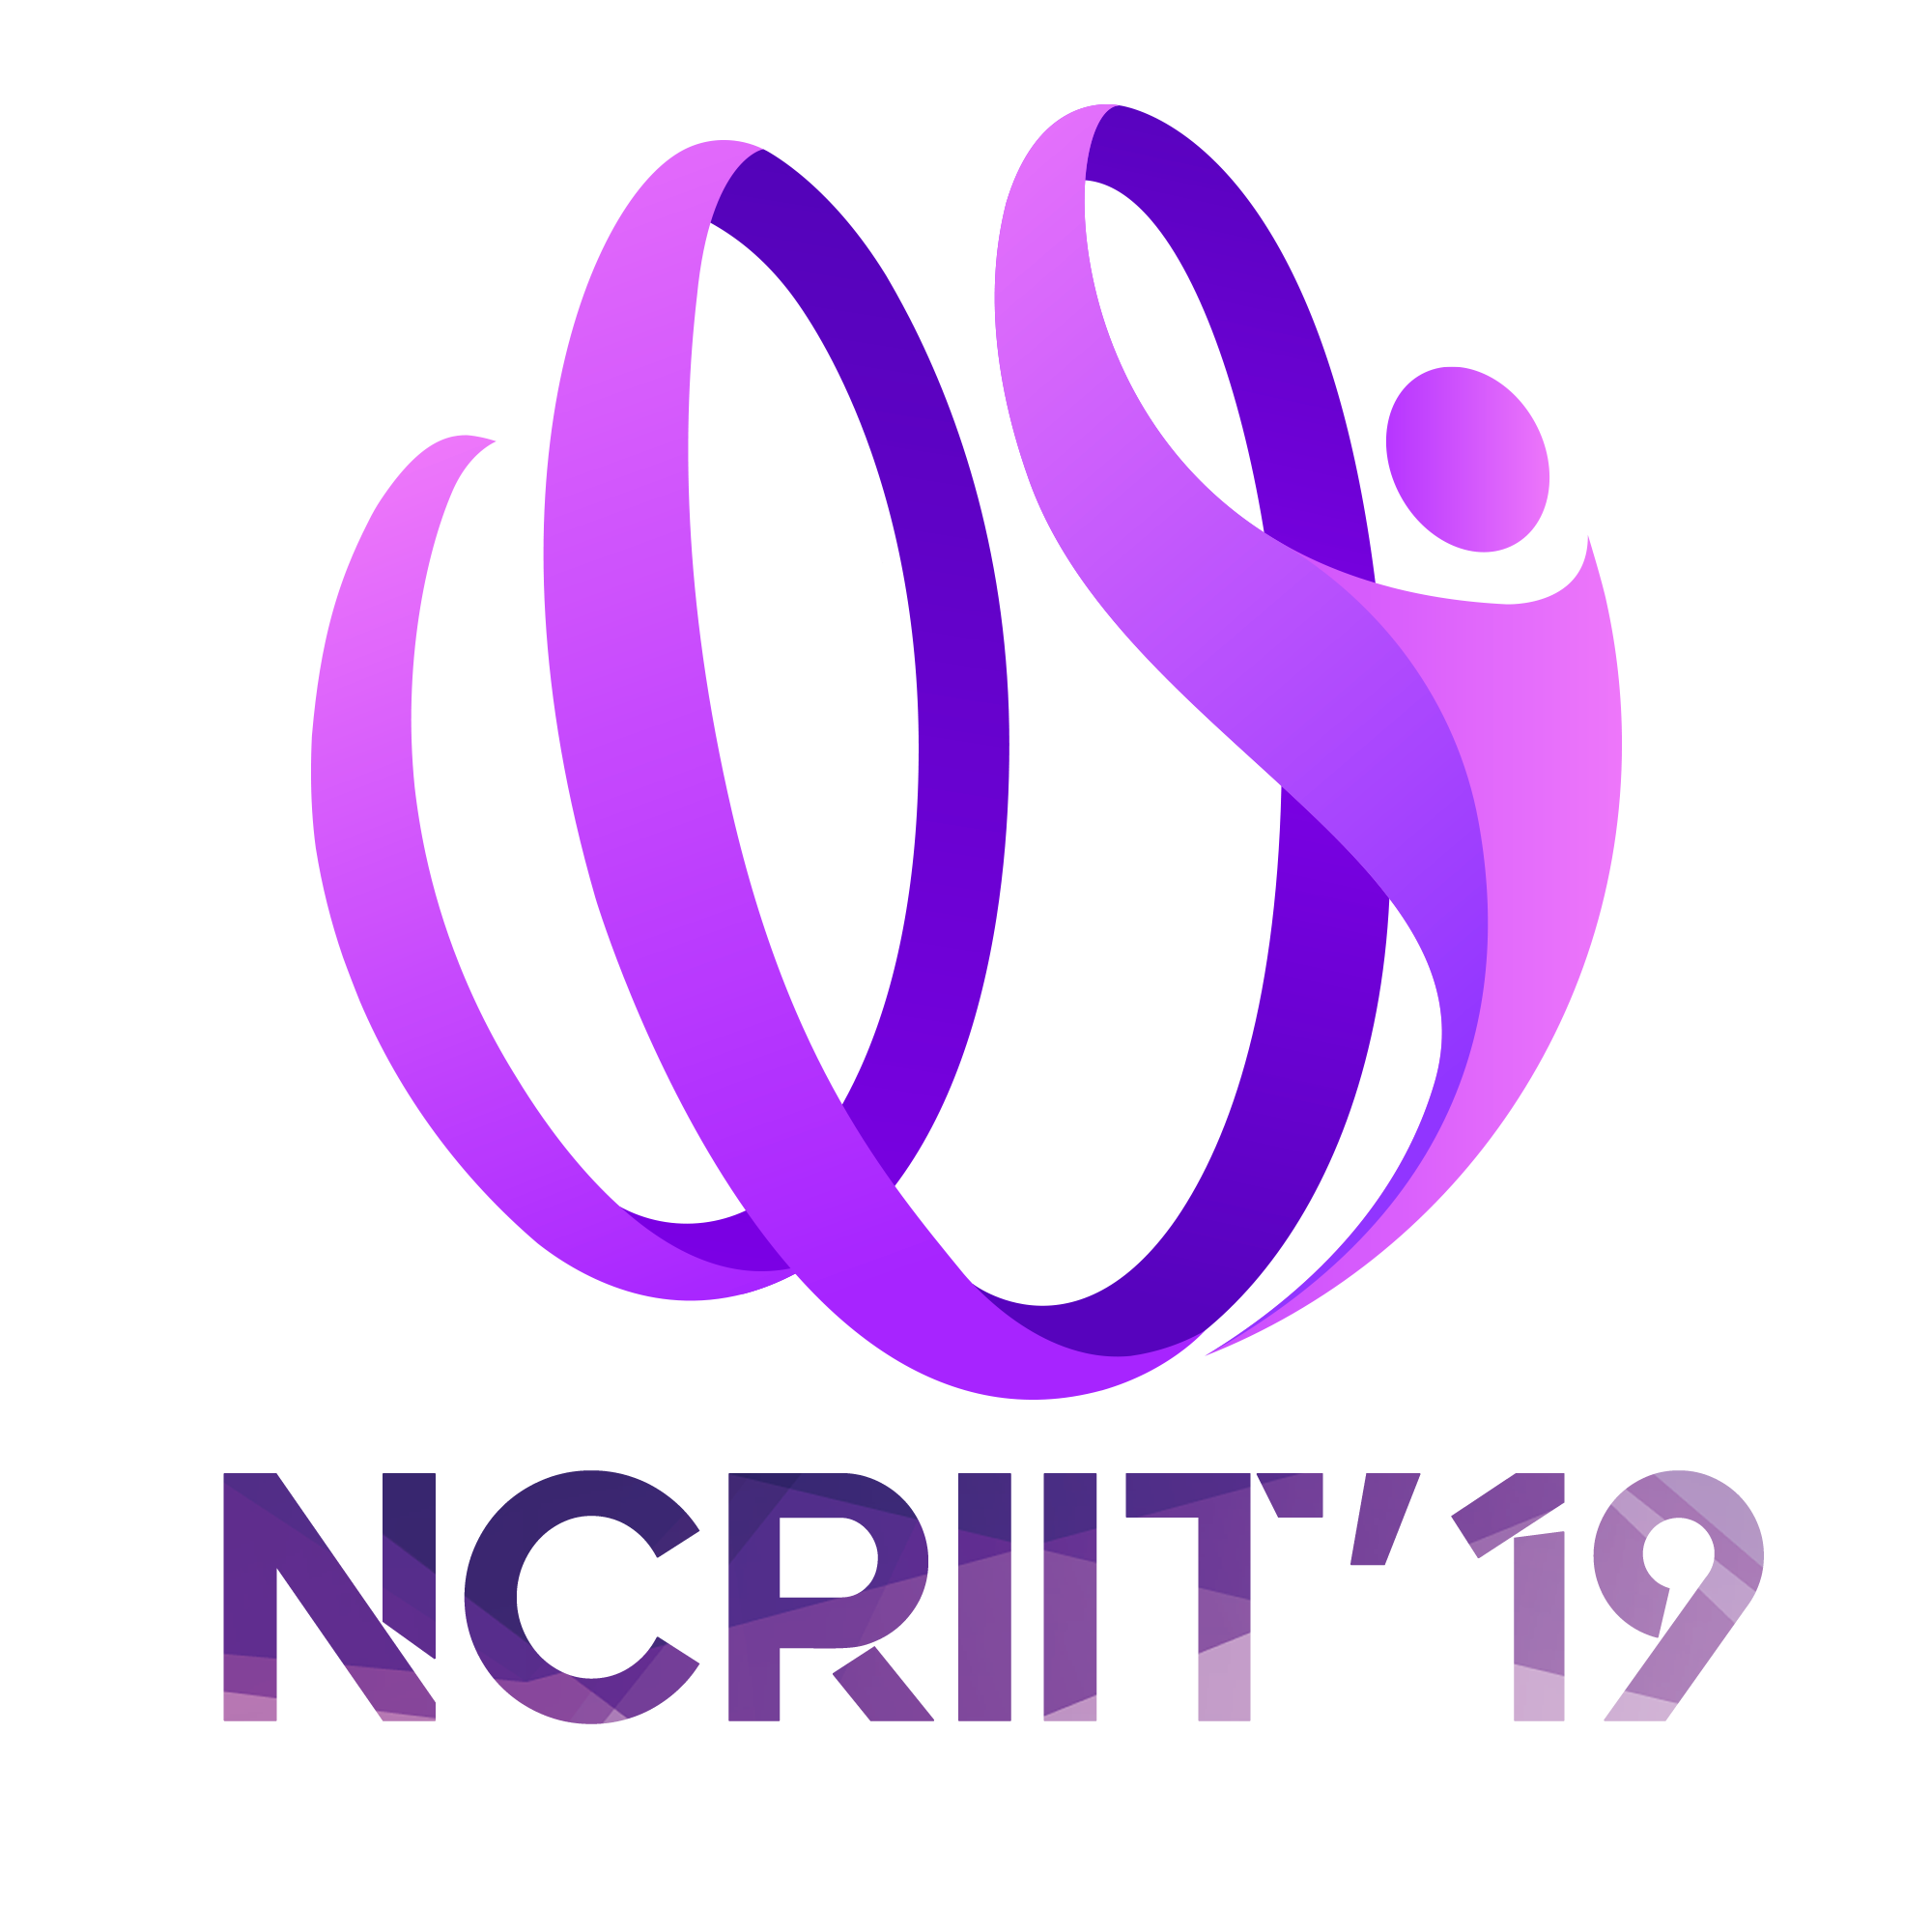 National Conference on Recent Trends and Innovation in Information Technology NCRIIT 2019, SRM Institute of Science and Technology Ramapuram Campus, Chennai, Tamil Nadu, 3rd April 2019